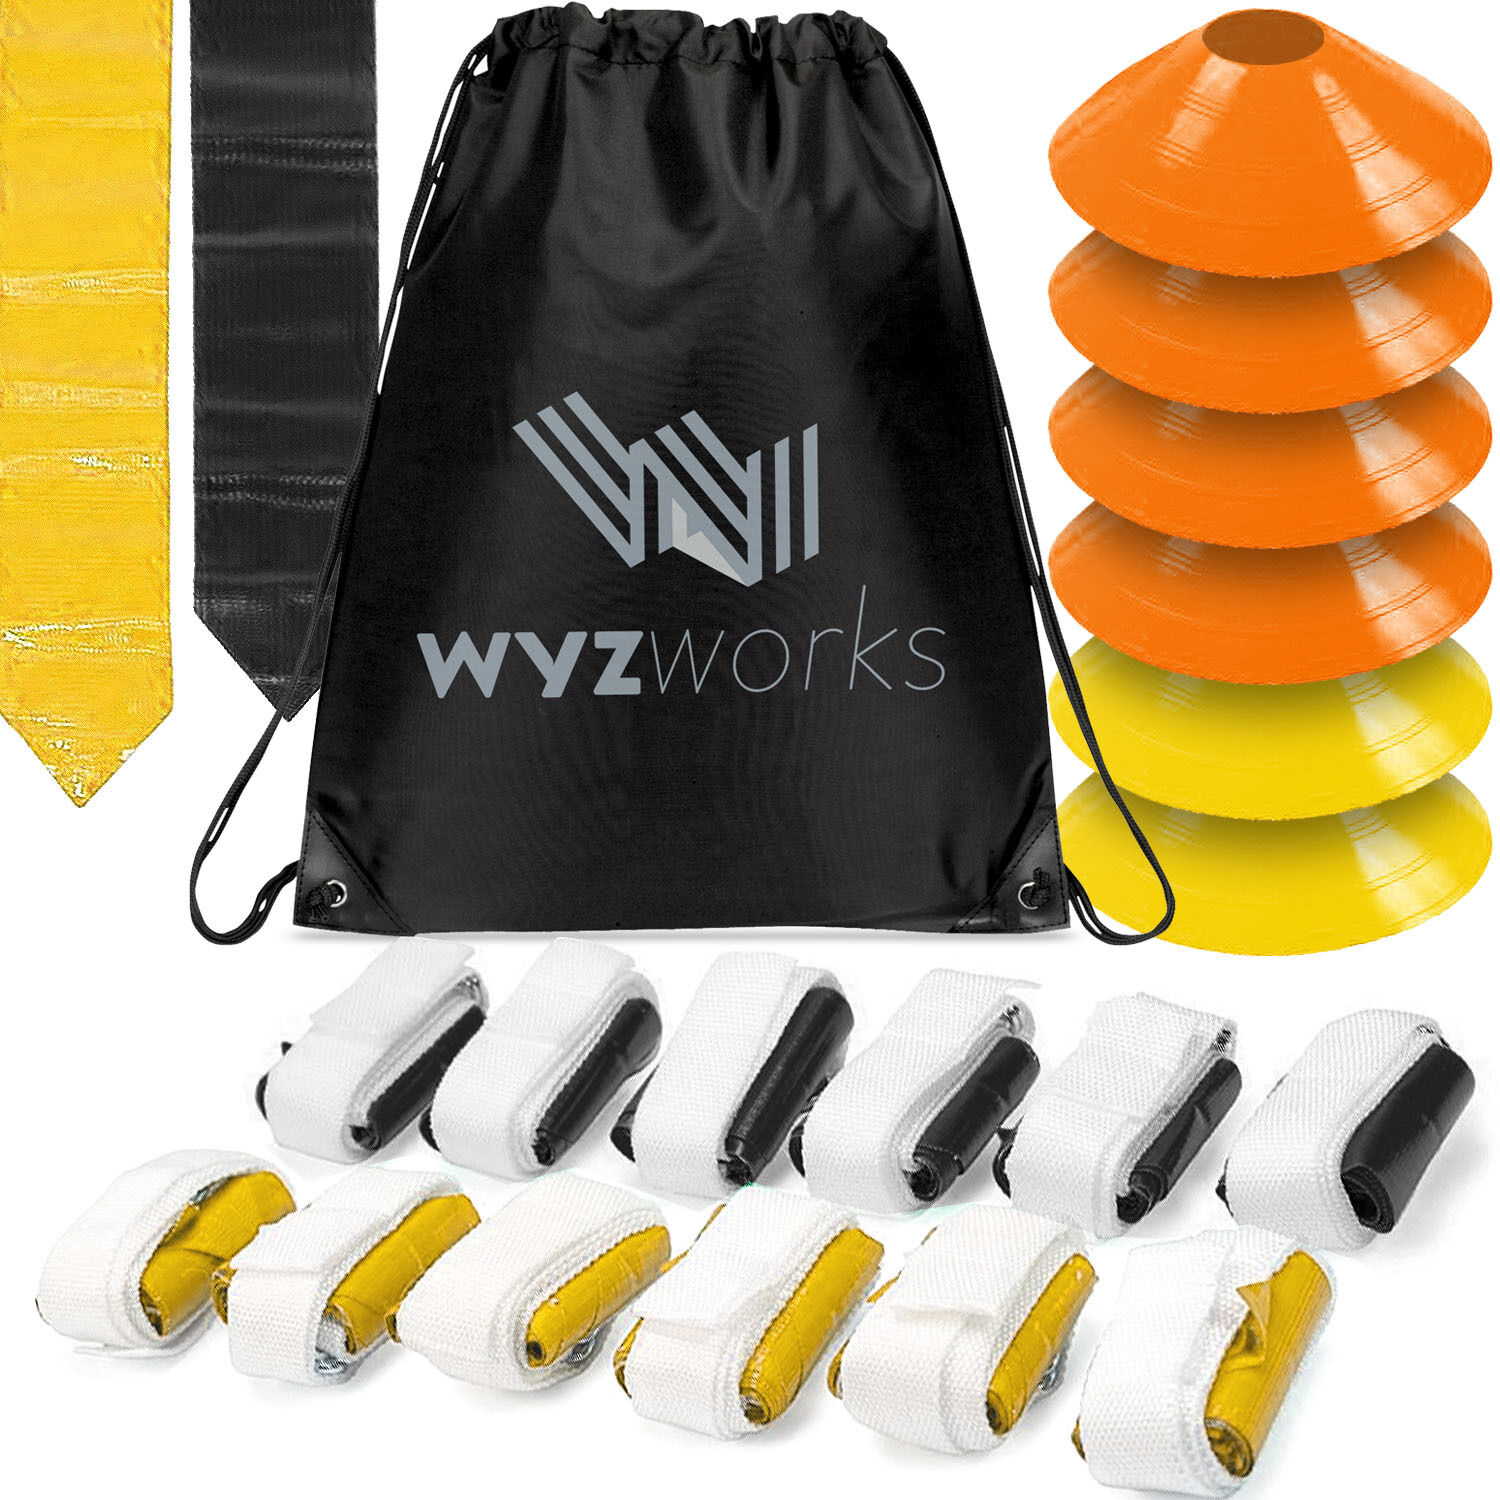 Details about Flag Football Belt Kit for 12 Players - Yellow   Black Flag +  Cones   Travel Bag c4973946e